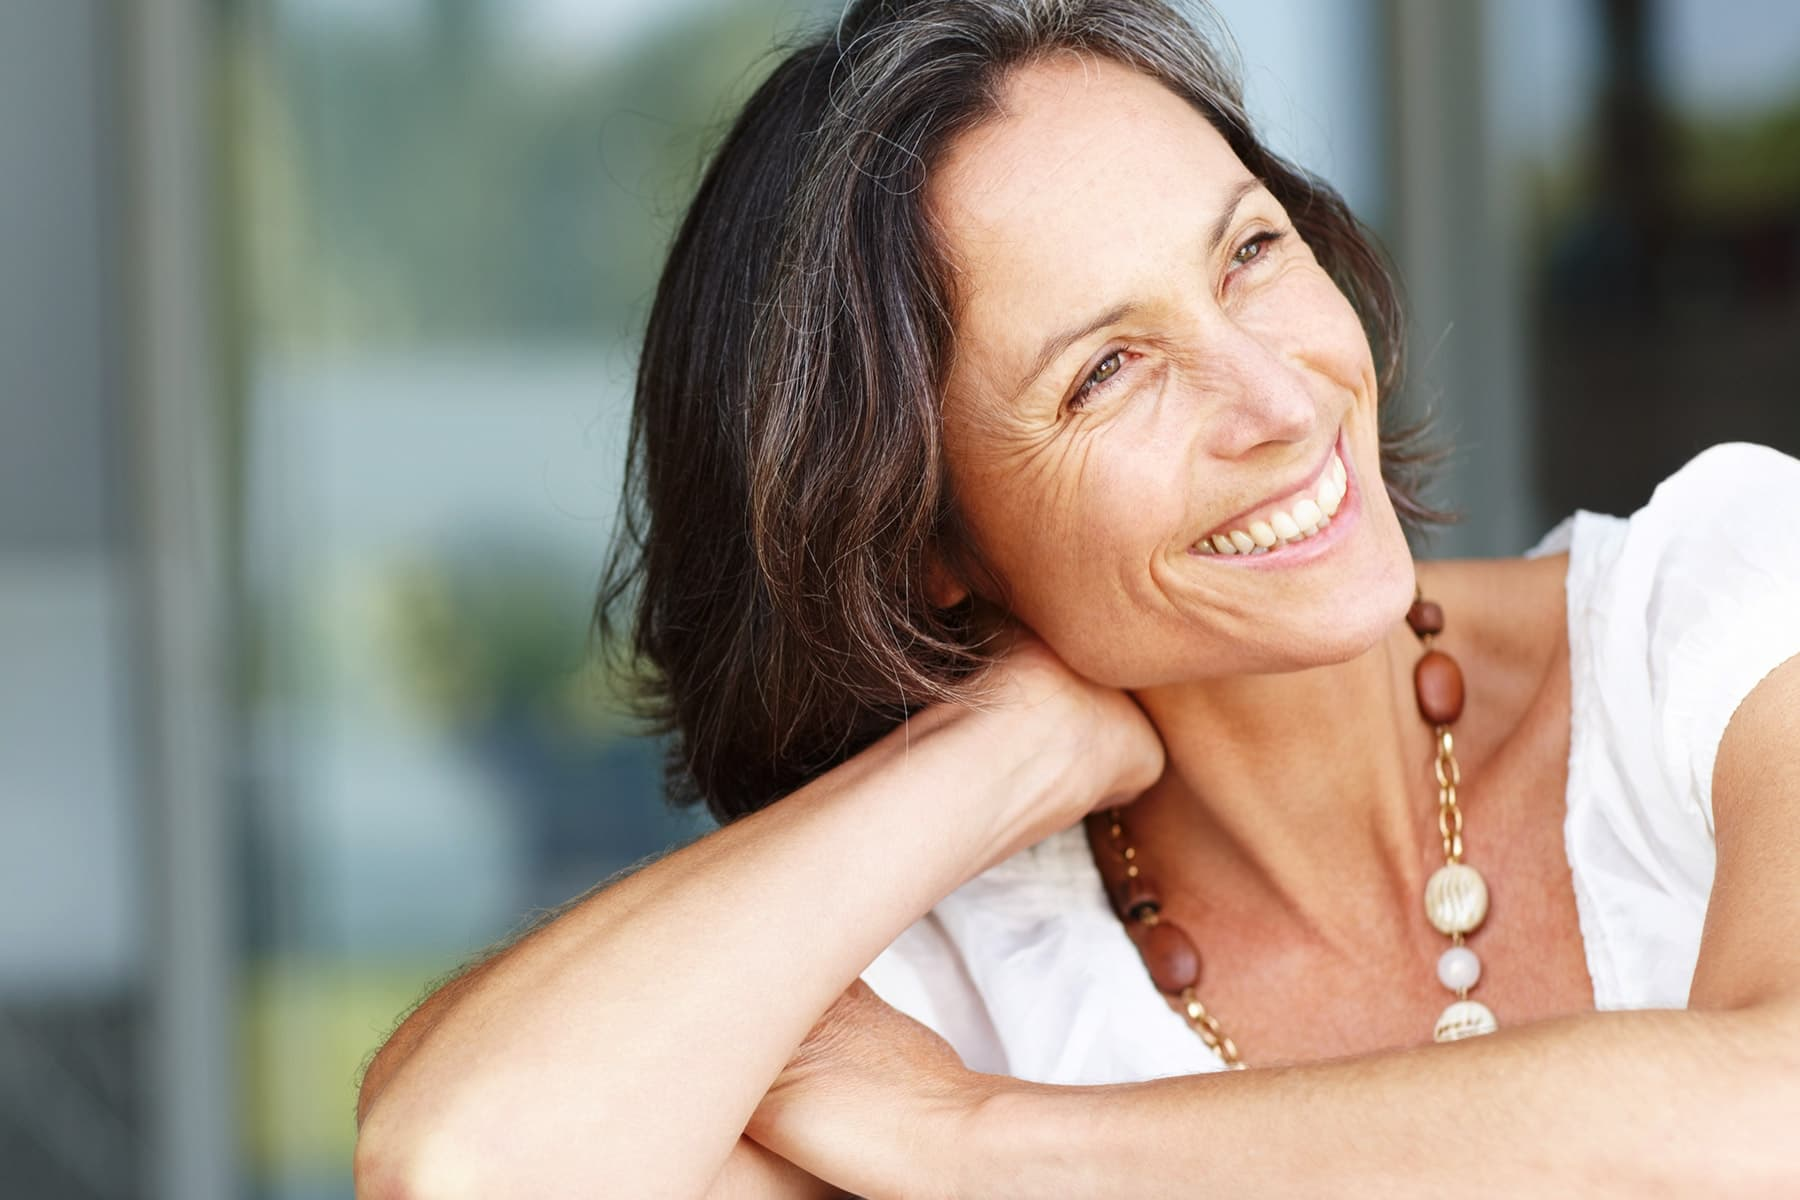 The Effects of Aging on Skin: Dry Skin, Loose Skin, and More